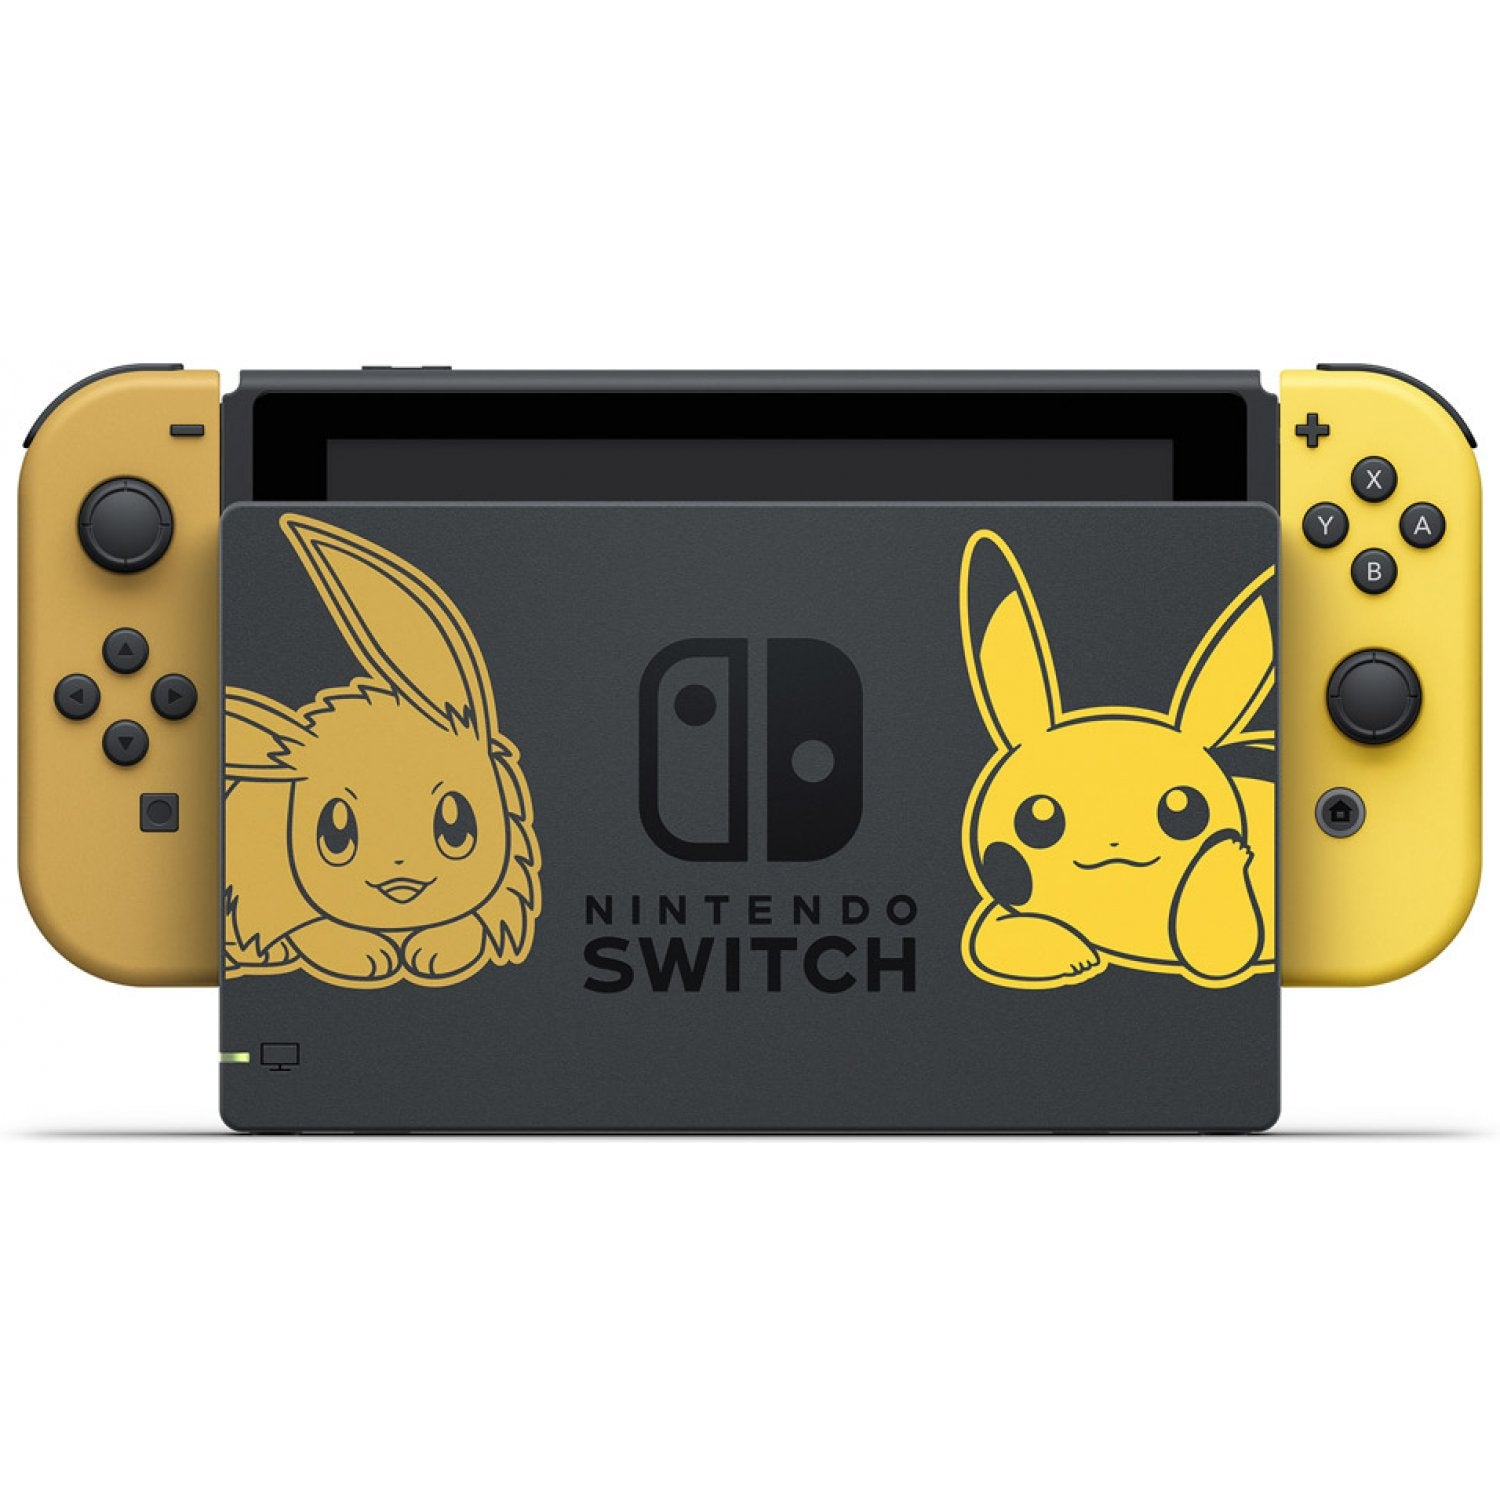 Nintendo Switch Pokemon Let's Go Eevee Console